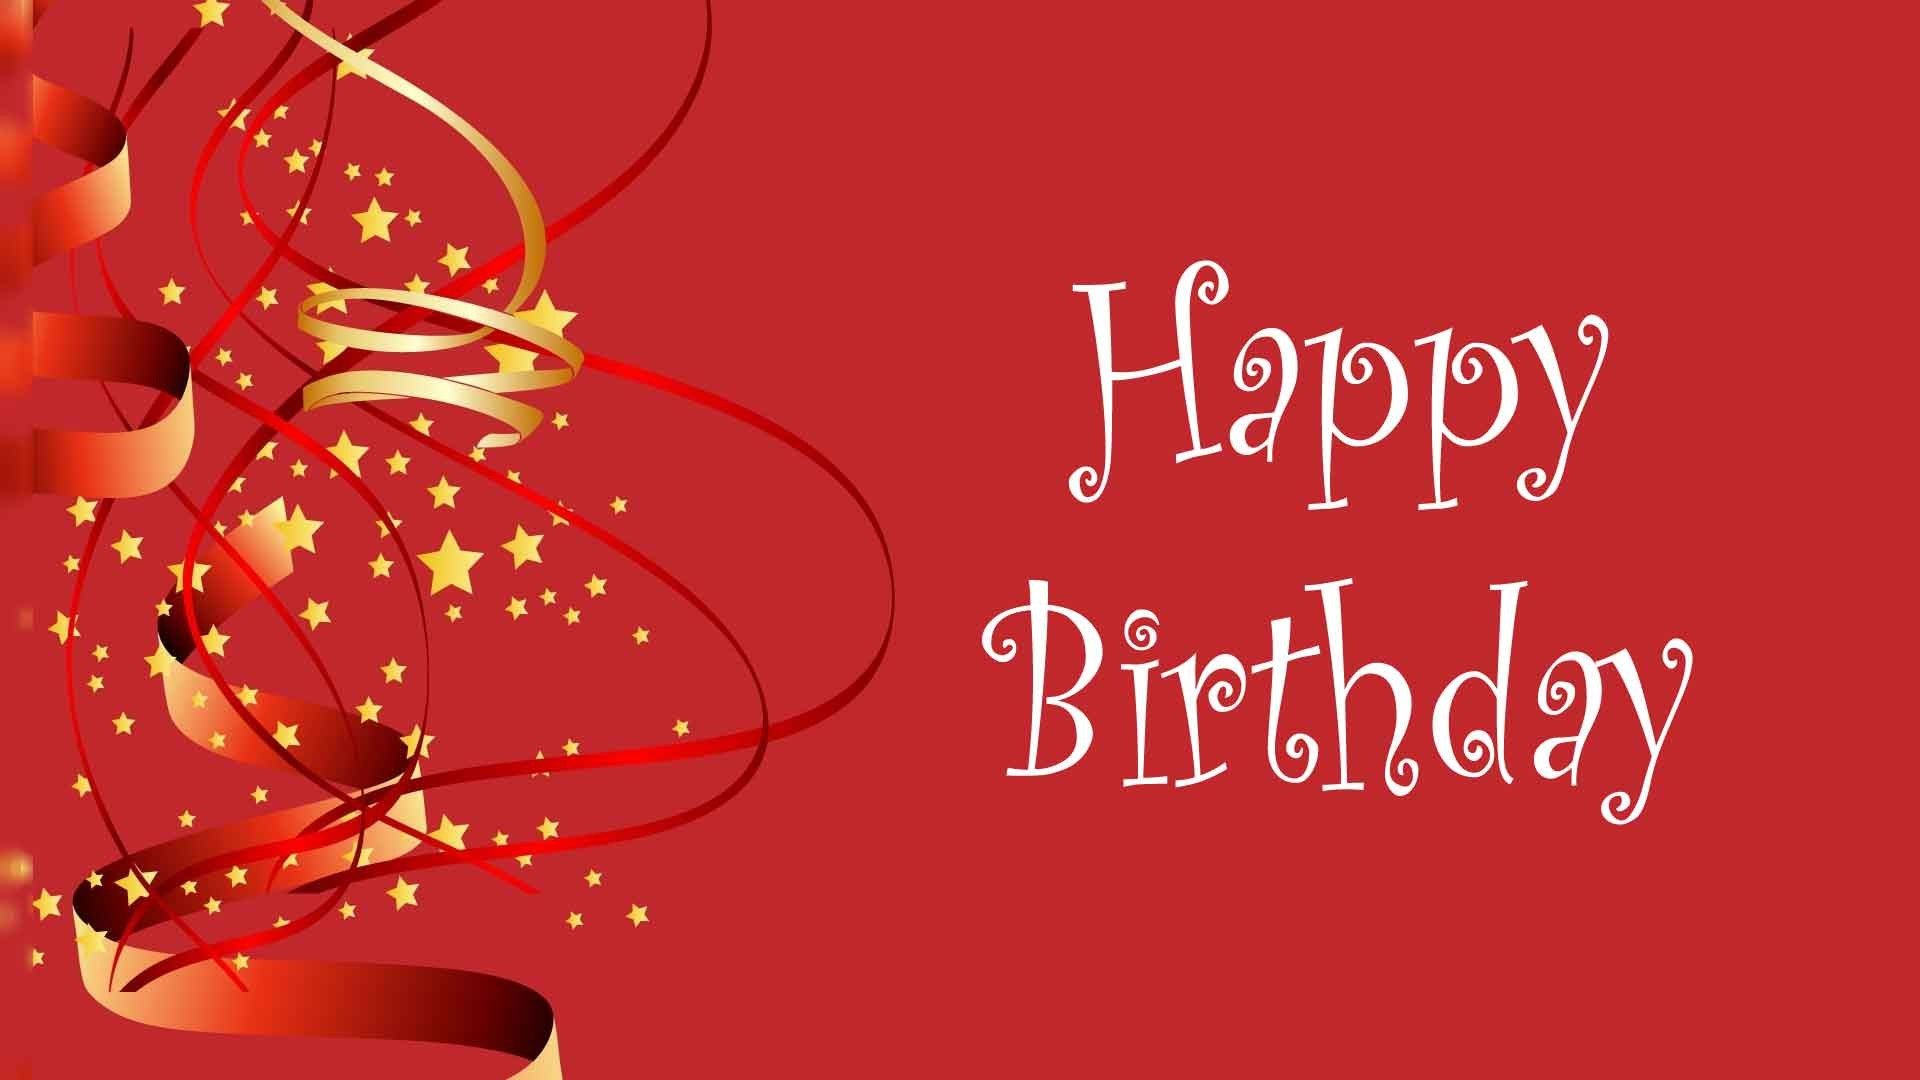 Happy birthday background download free stunning - Happy birthday card wallpaper ...